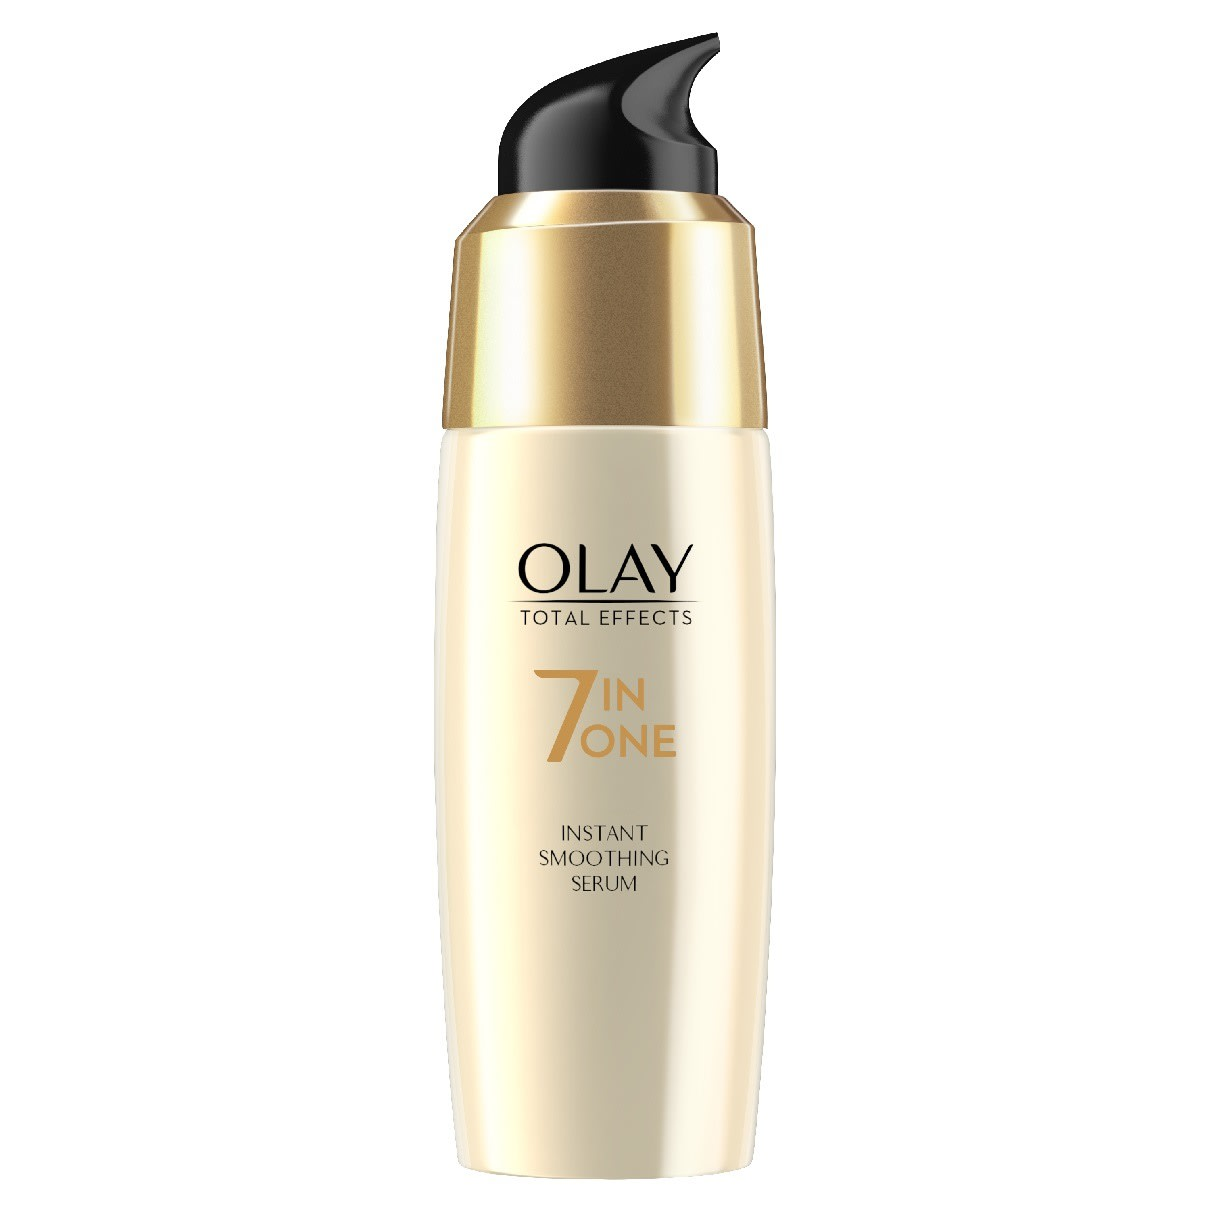 Olay Total Effects 7in1 Anti-Ageing Instant Smoothing Serum 50ml